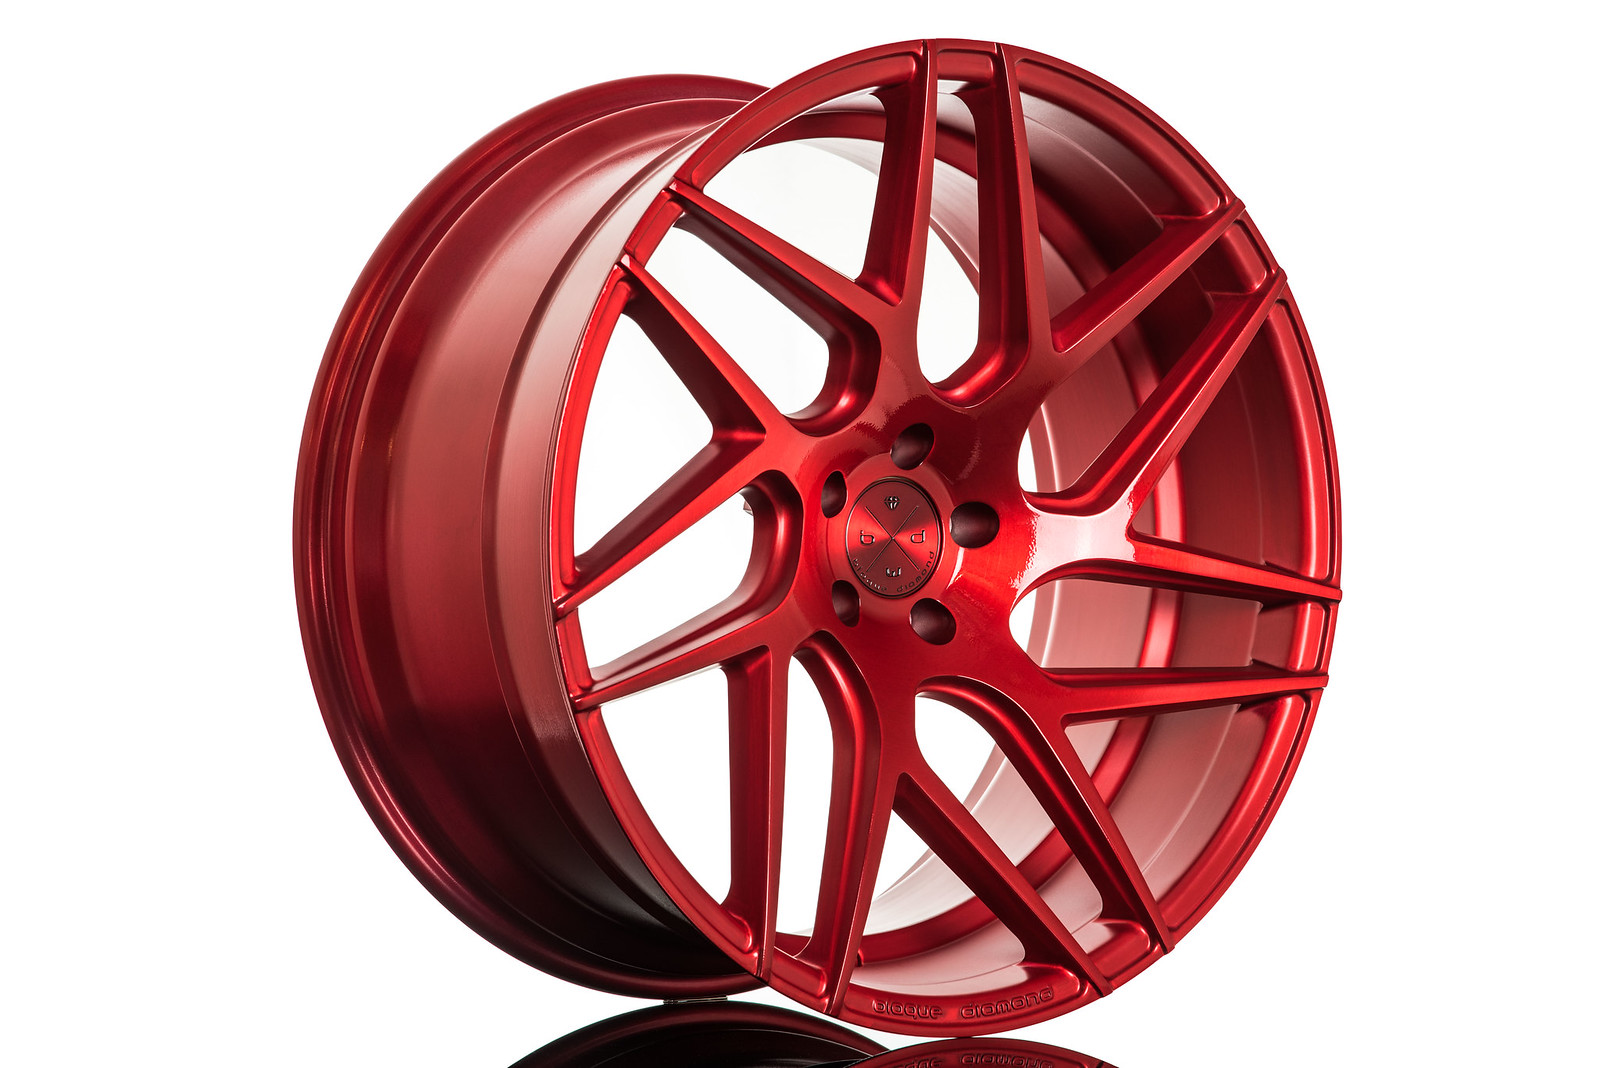 BD3_Brushed_Anodized_Red-2